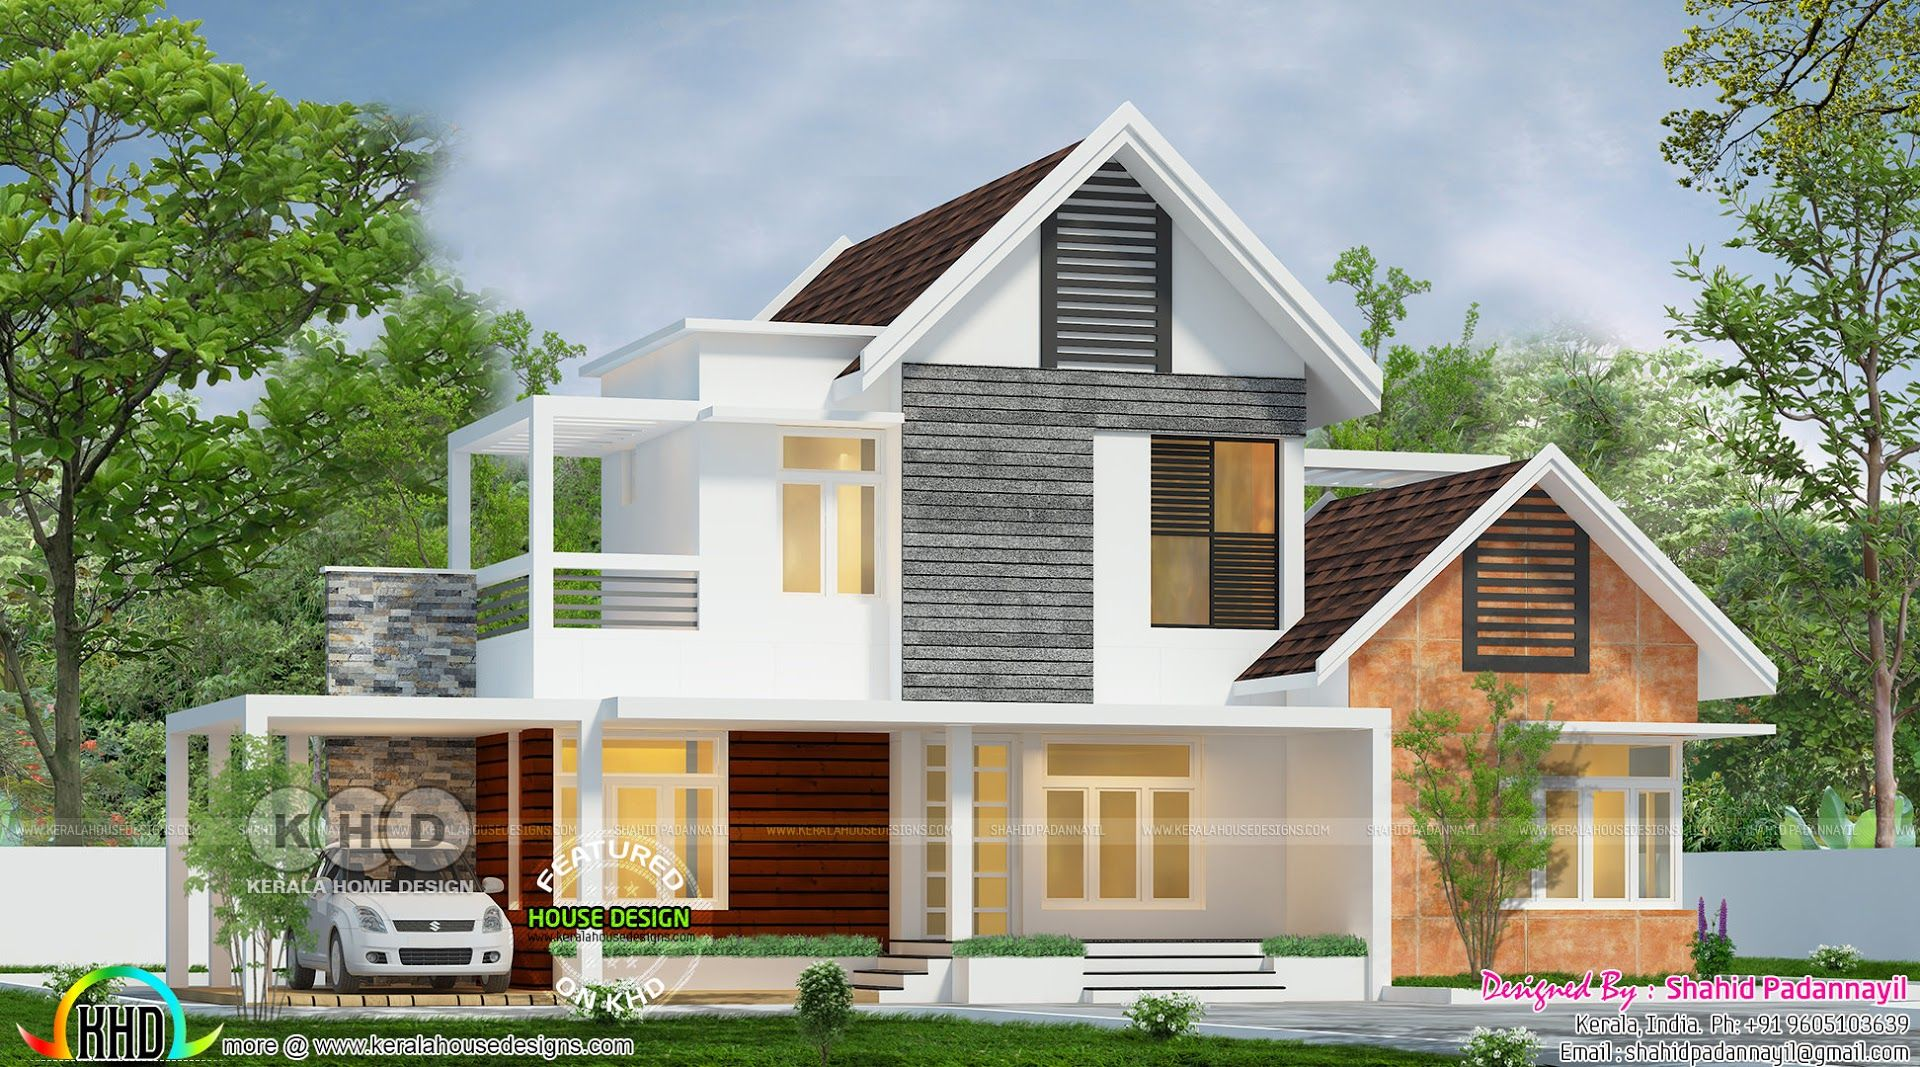 Beautiful mixed roof 3 bedroom house | house plans | House, 3 ... on cheap 1 bedroom house plans, large 4 bedroom house plans, beautiful kitchen plans, beautiful garage plans, beautiful 2 bedroom house plans, beautiful 5 bedroom house plans, luxury kerala house design plans, beautiful luxury home plans, beautiful barn plans, beautiful basement plans, beautiful 4 bedroom house plans, beautiful cottage plans, beautiful open floor plans, luxury 6 bedroom house plans,